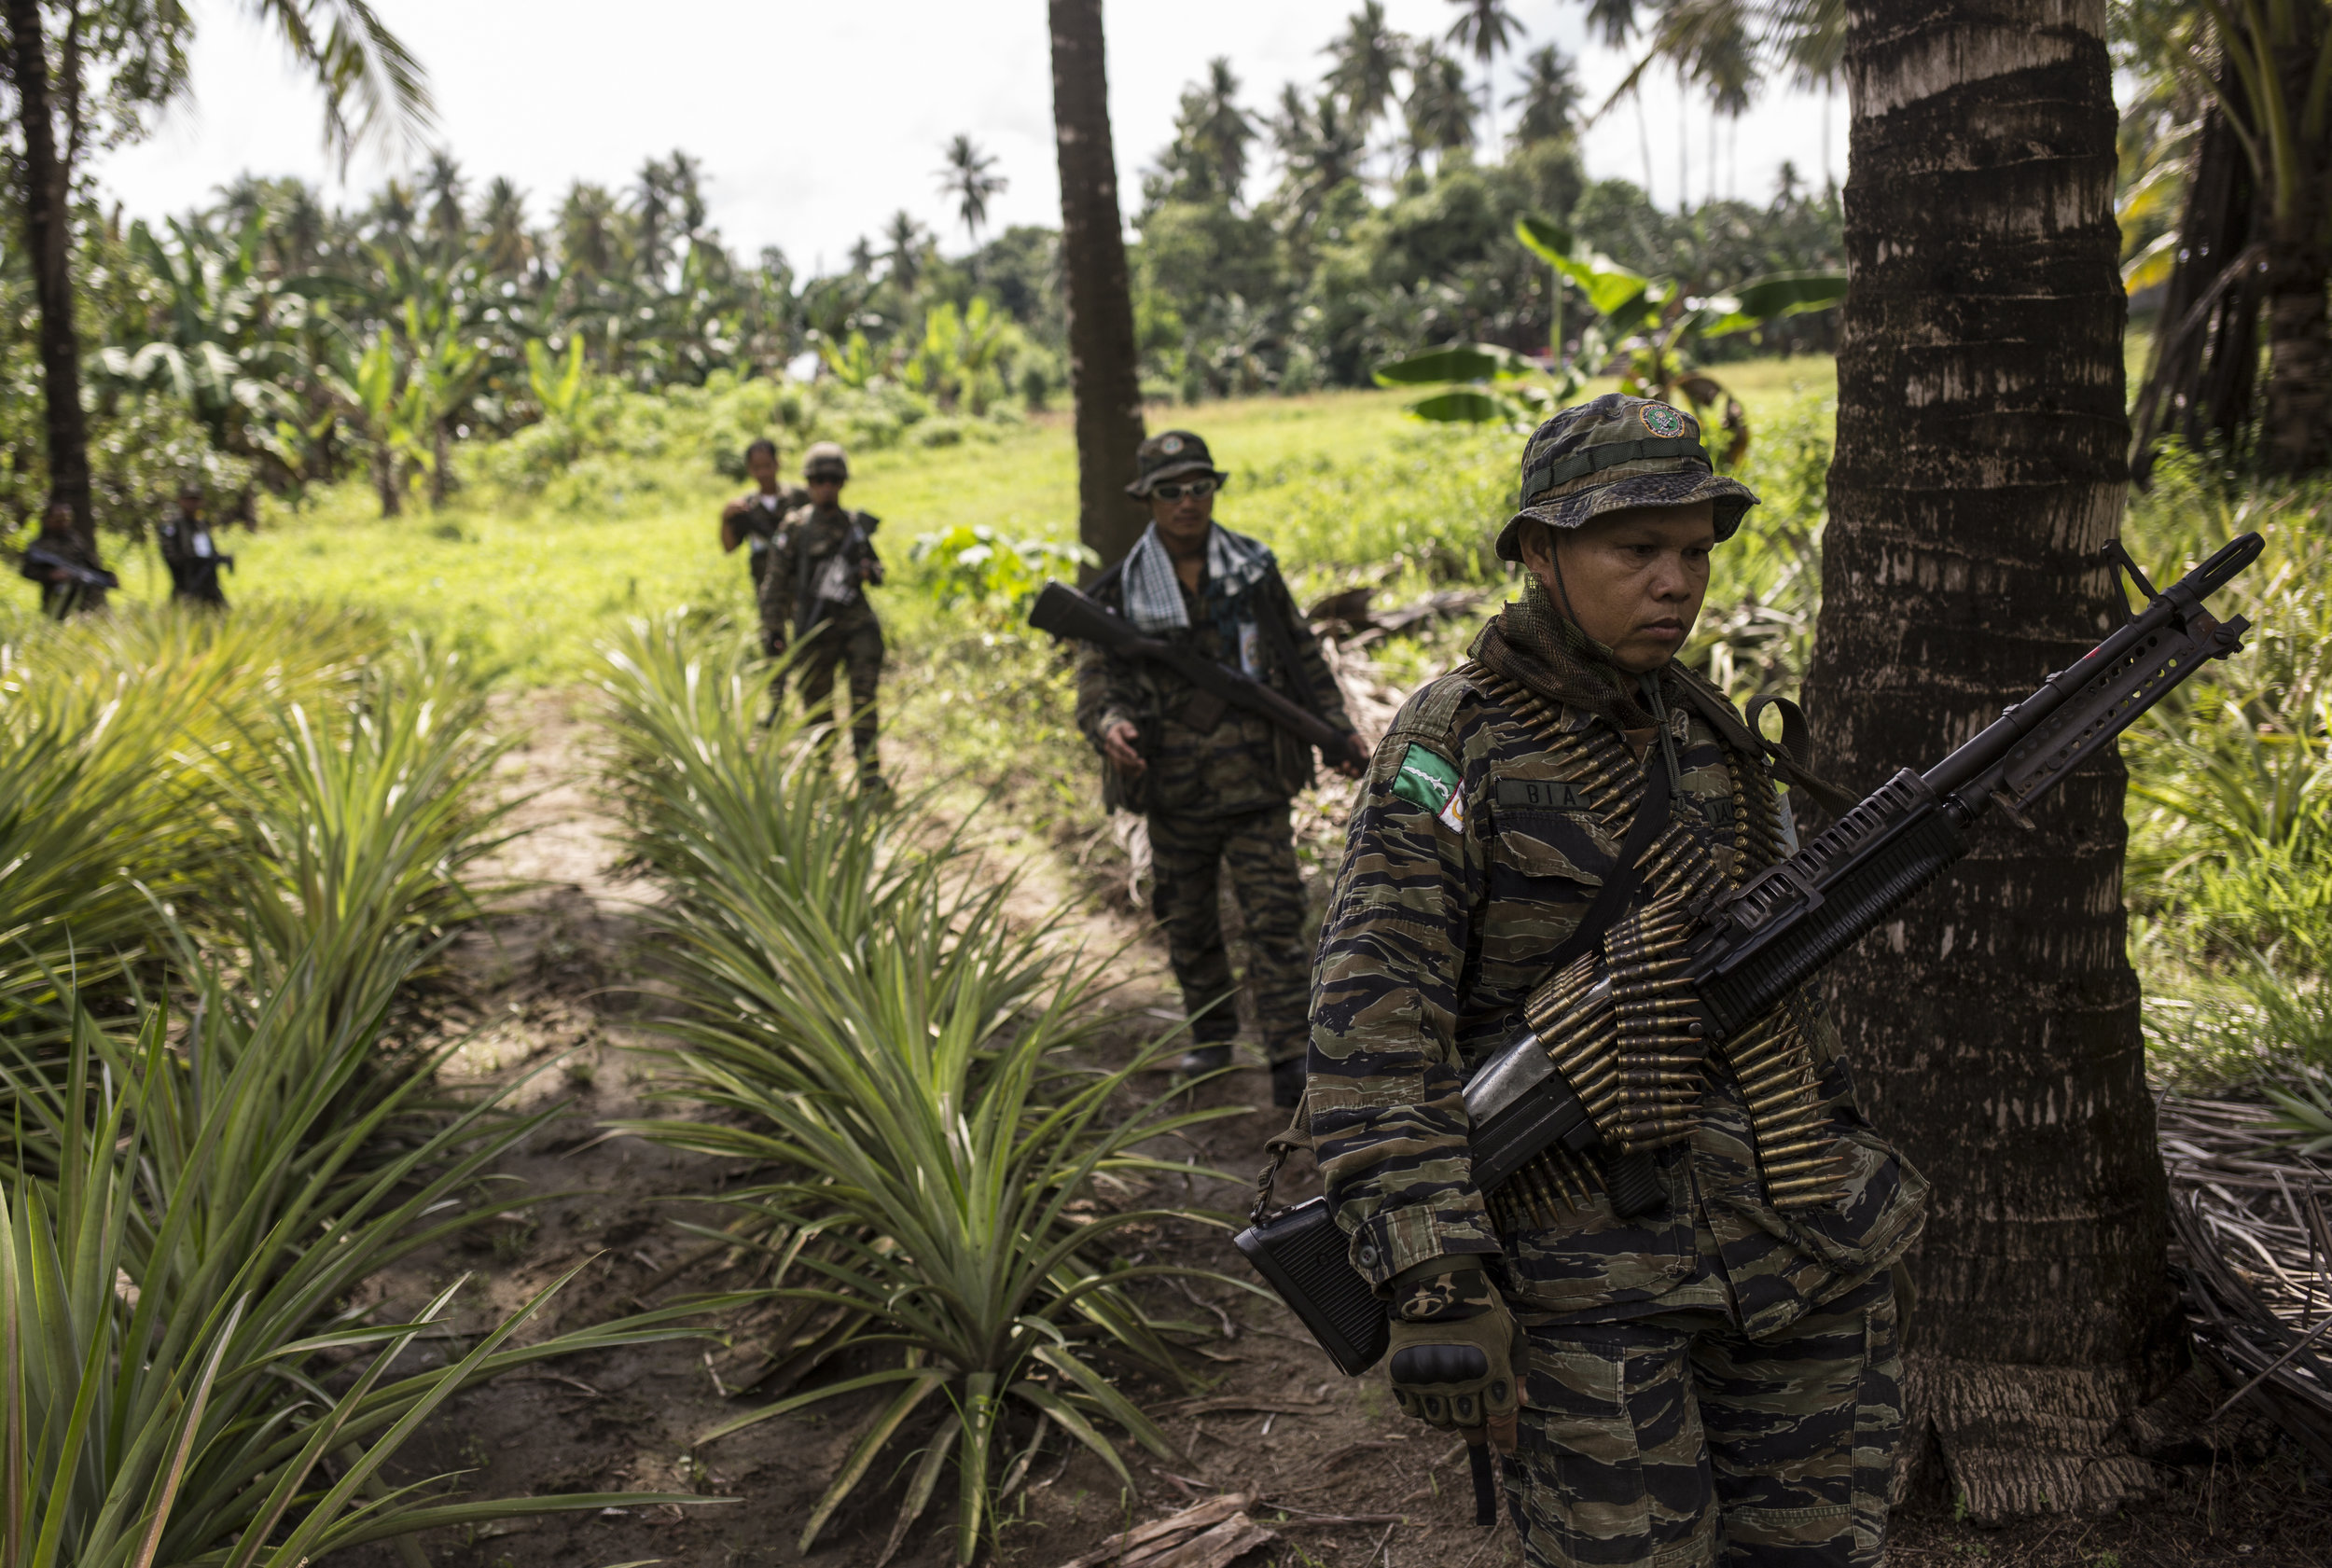 ISIS_In_The_Philippines (12 of 22).jpg